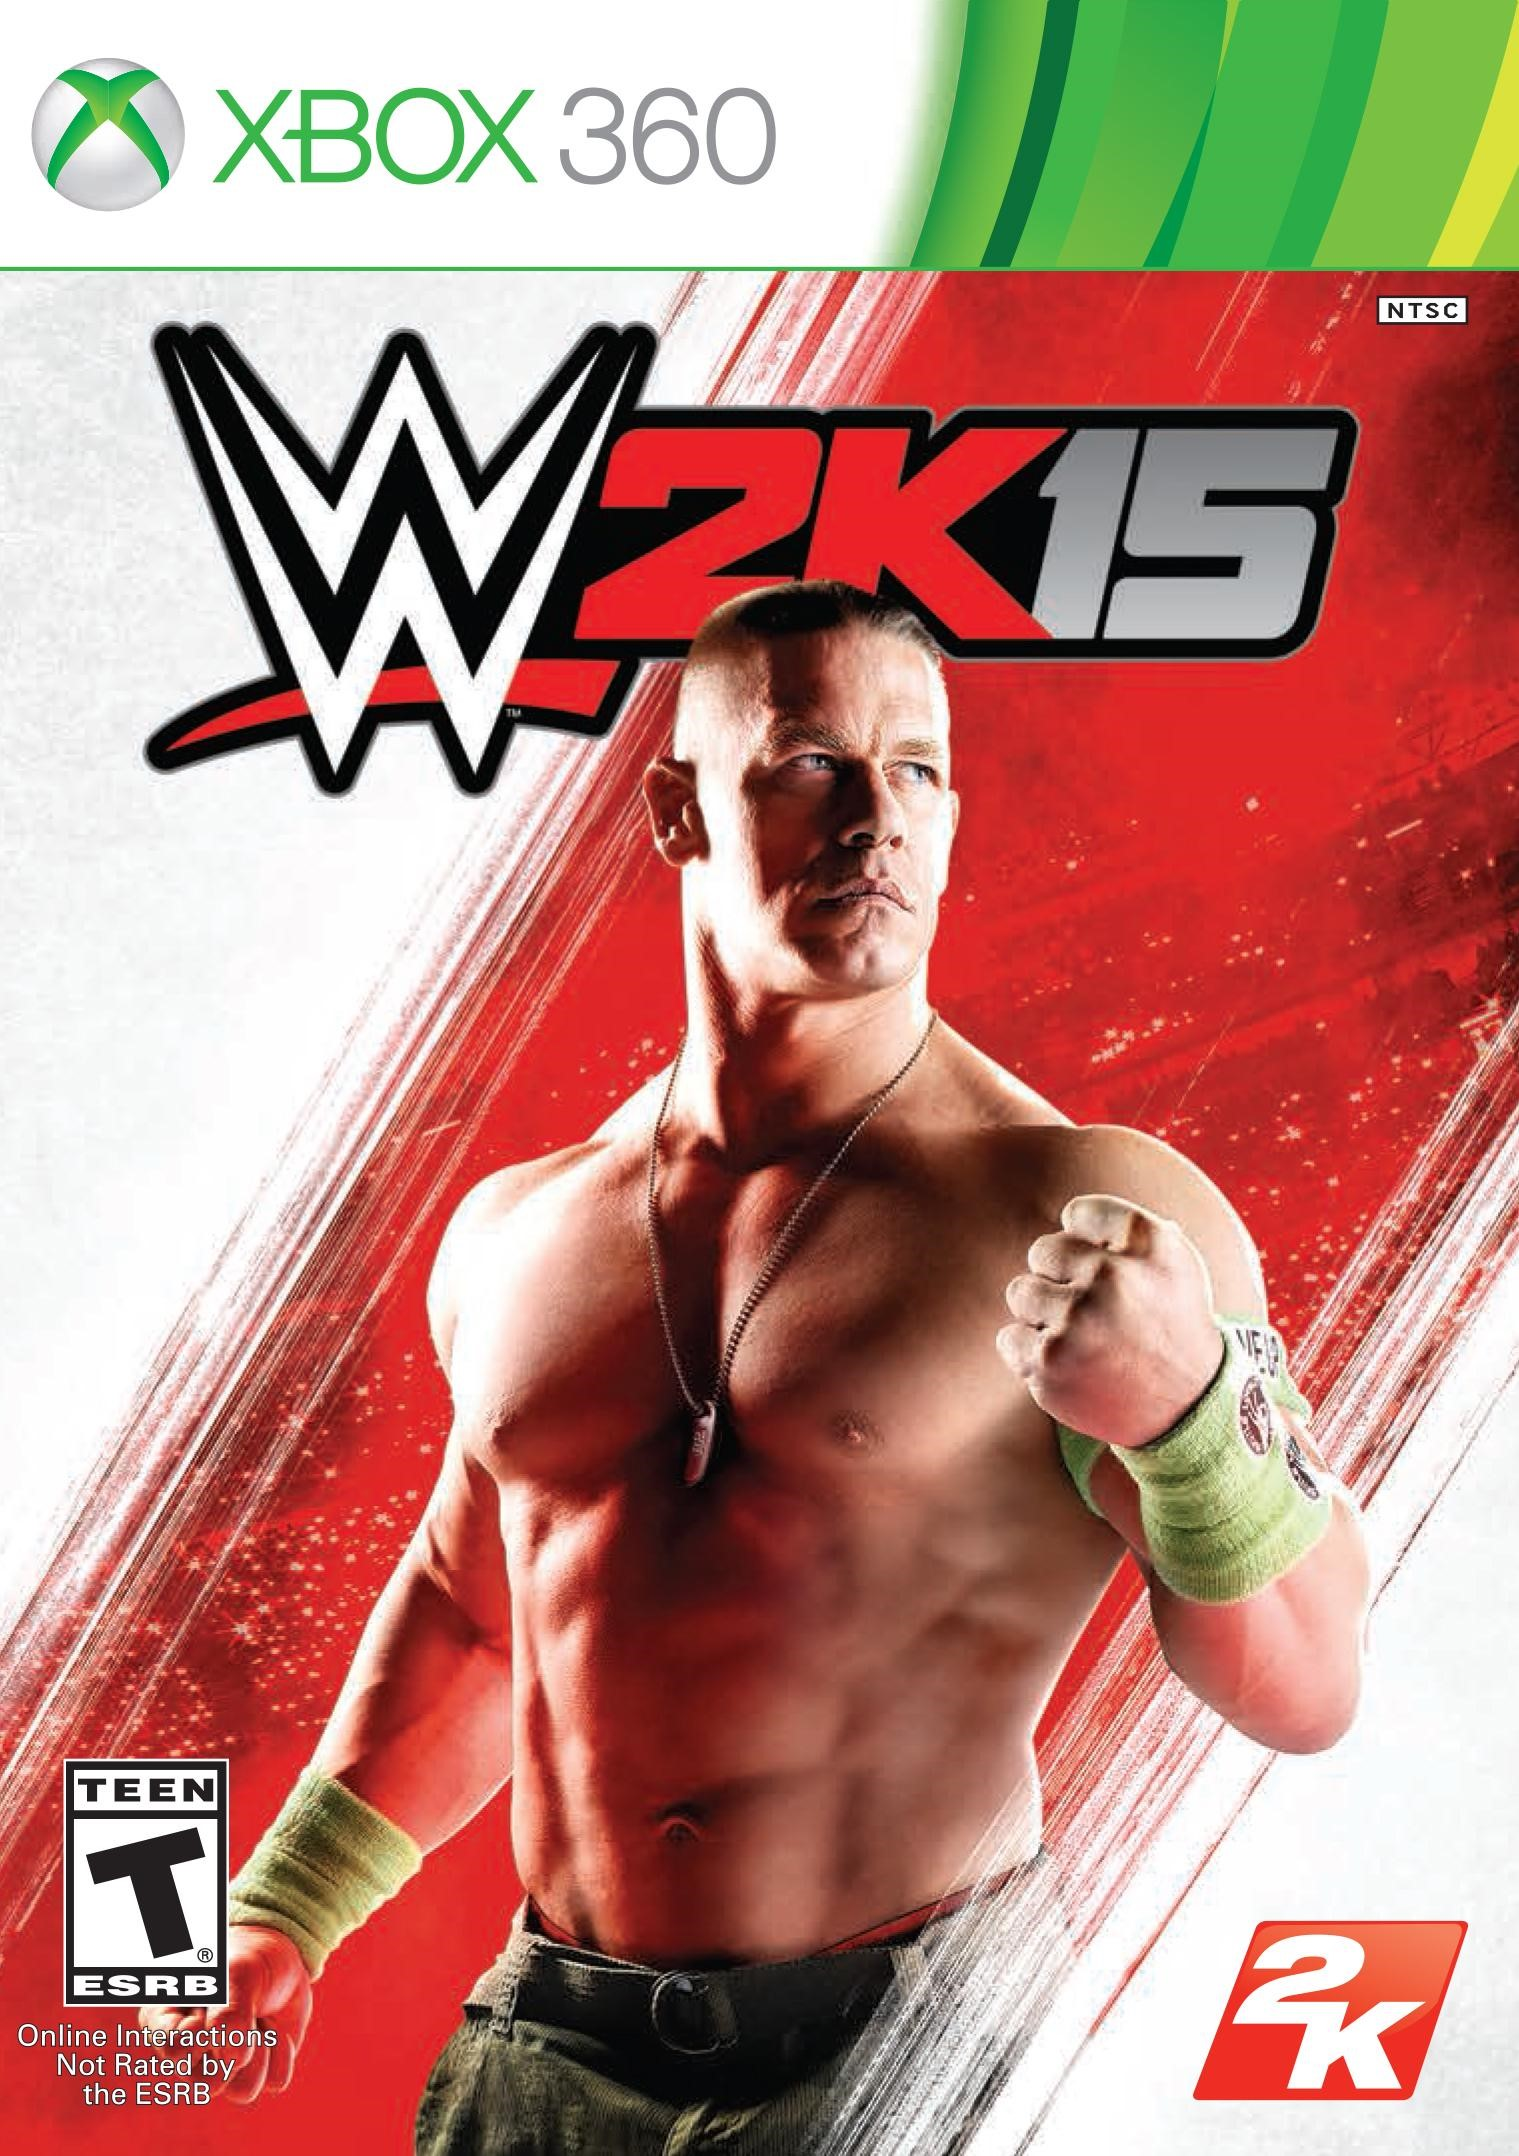 WWE 2K15, Metro 2033, Plants vs. Zombies  Xbox 360